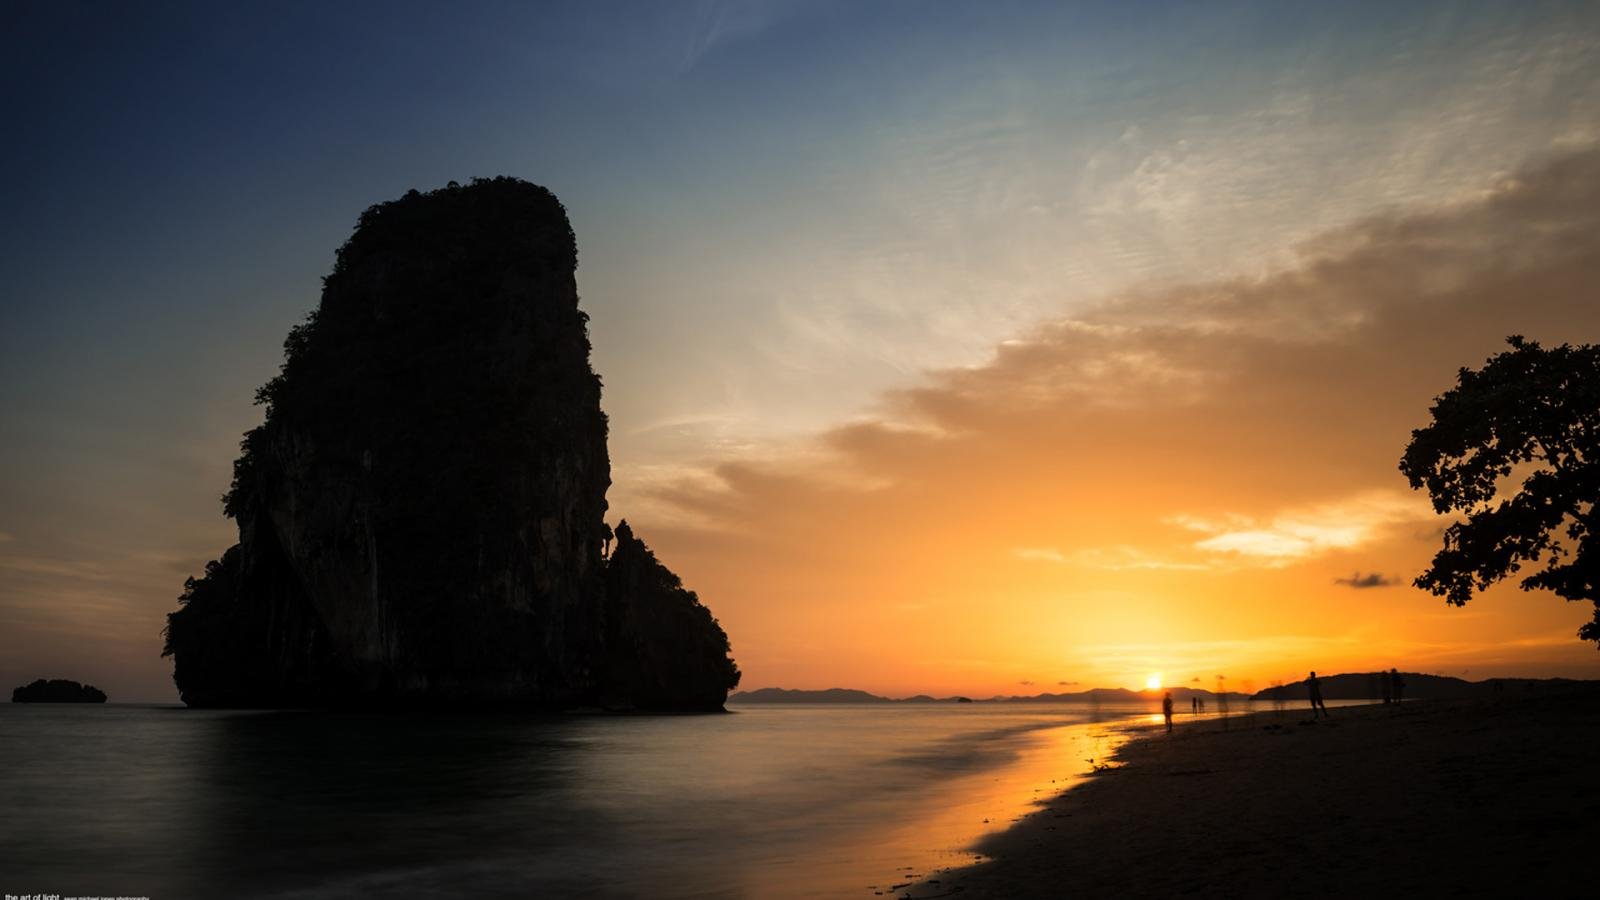 Big Size Wallpapers With Quotes Long Exposure Photo Of Sunset In Phra Nang Beach Thailand